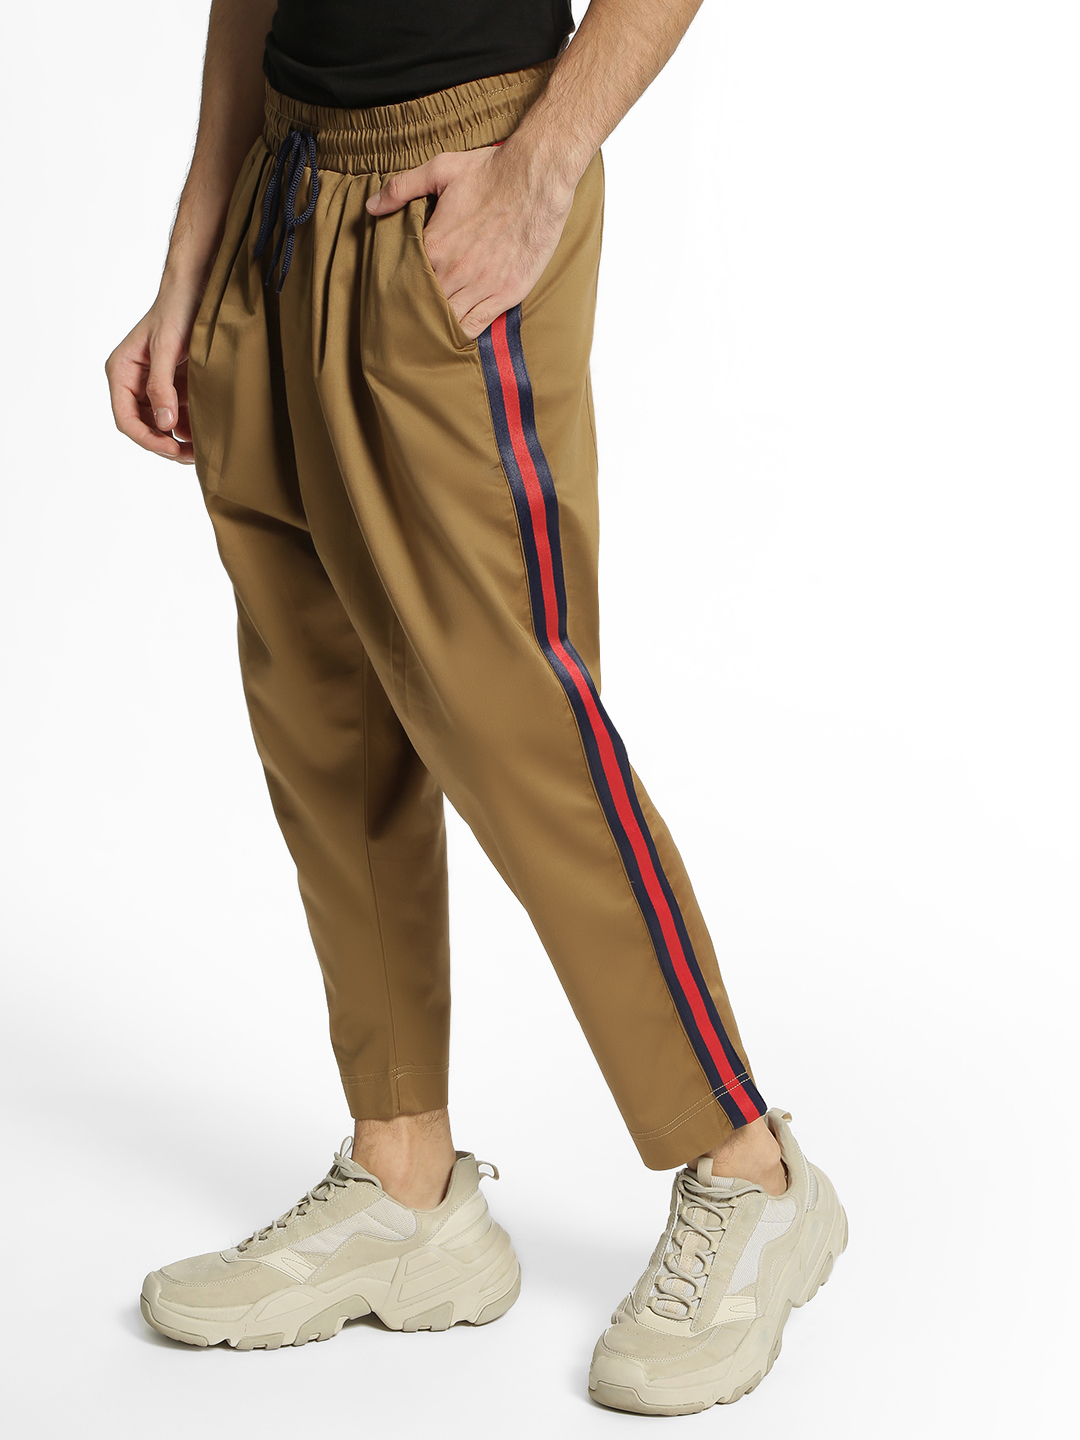 Adamo London Khaki Drop Crotch Side Tape Trousers 1